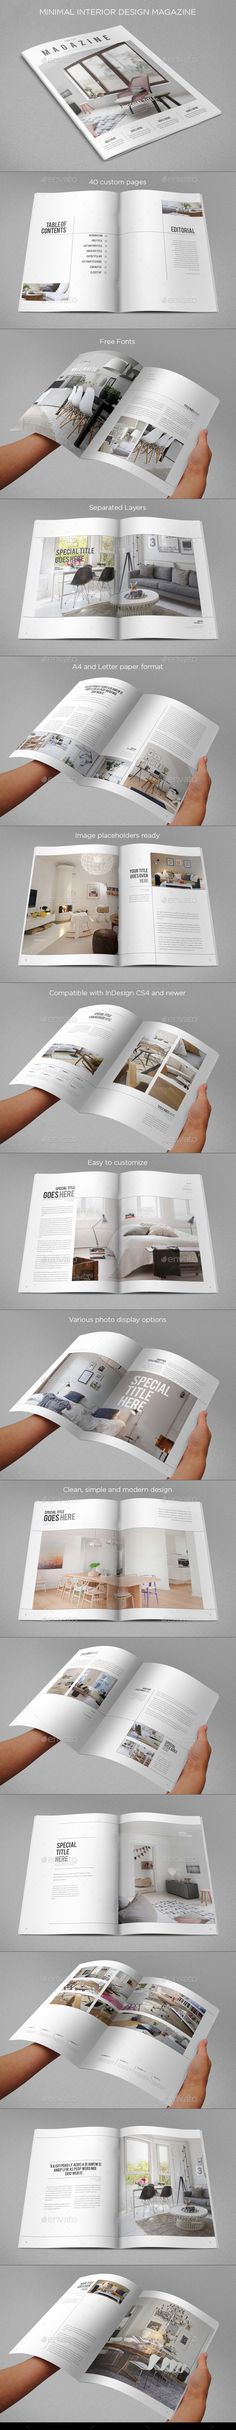 Minimal Interior Design Magazine Template | Download: http://graphicriver.net/item/minimal-interior-design-magazine/9499179?ref=ksioks